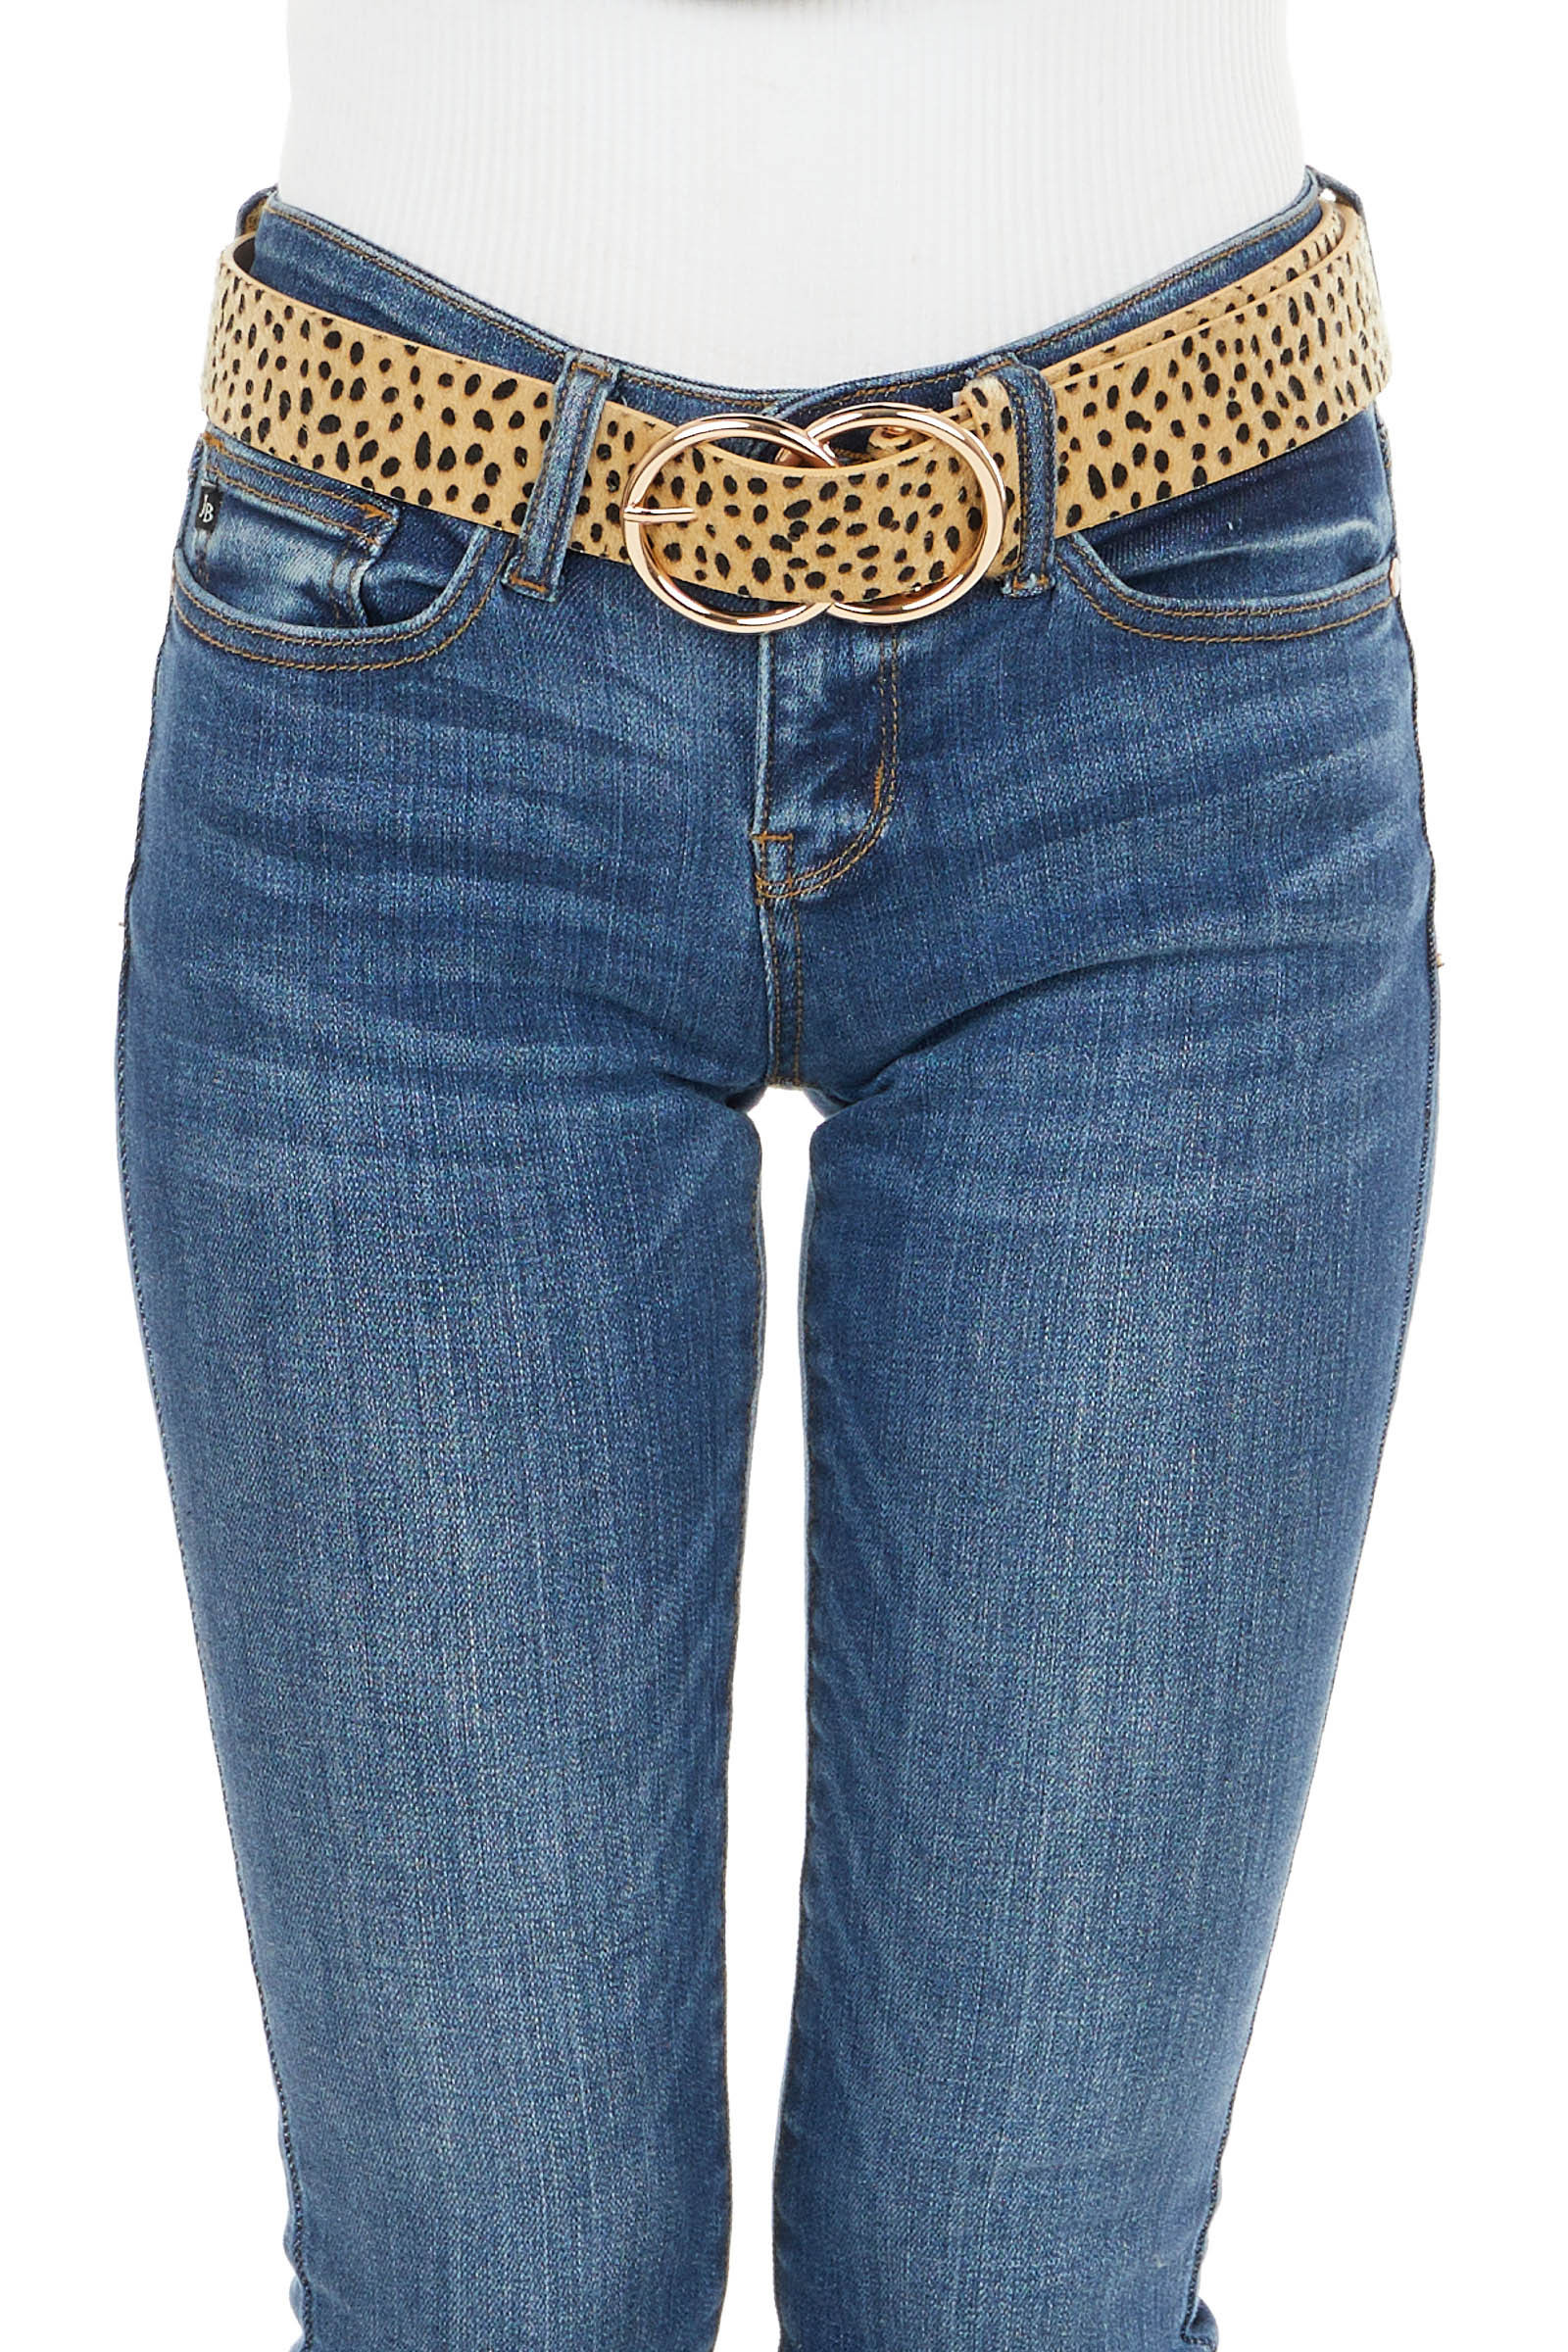 Camel Furry Cheetah Print Leather Belt with Rose Gold Buckle